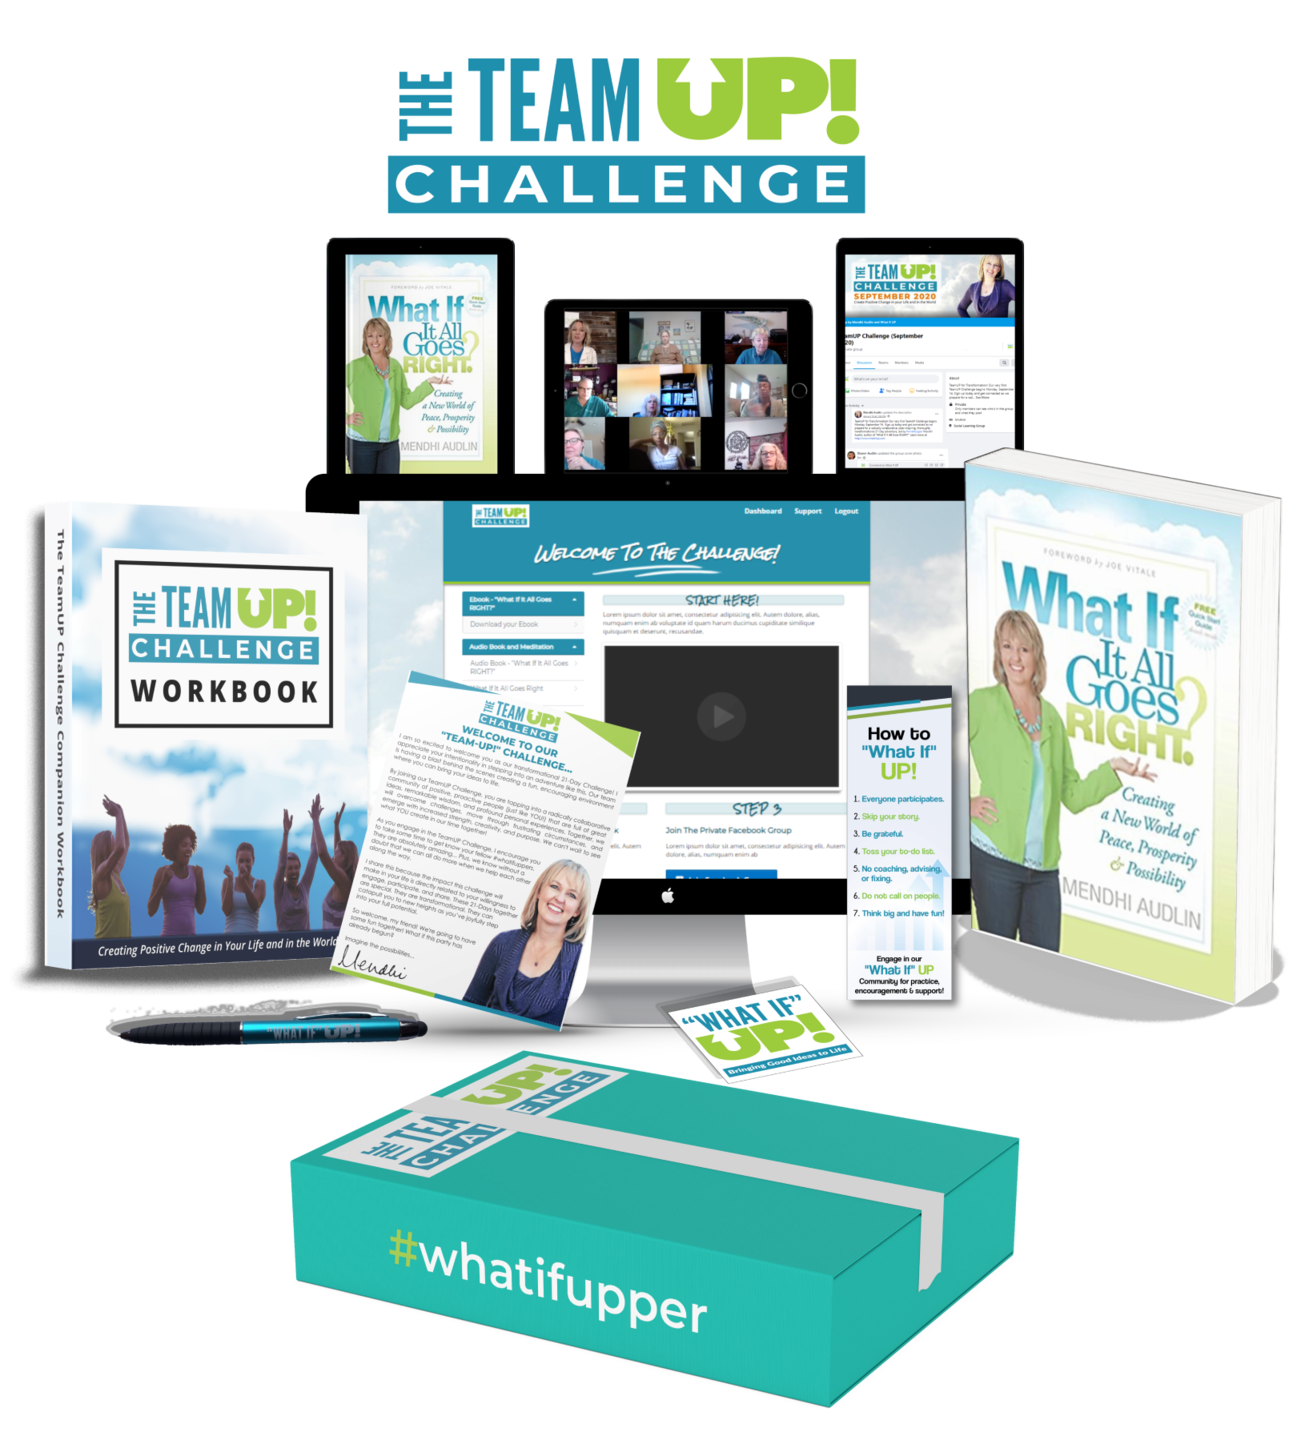 The TeamUP Challenge Physical Bundle